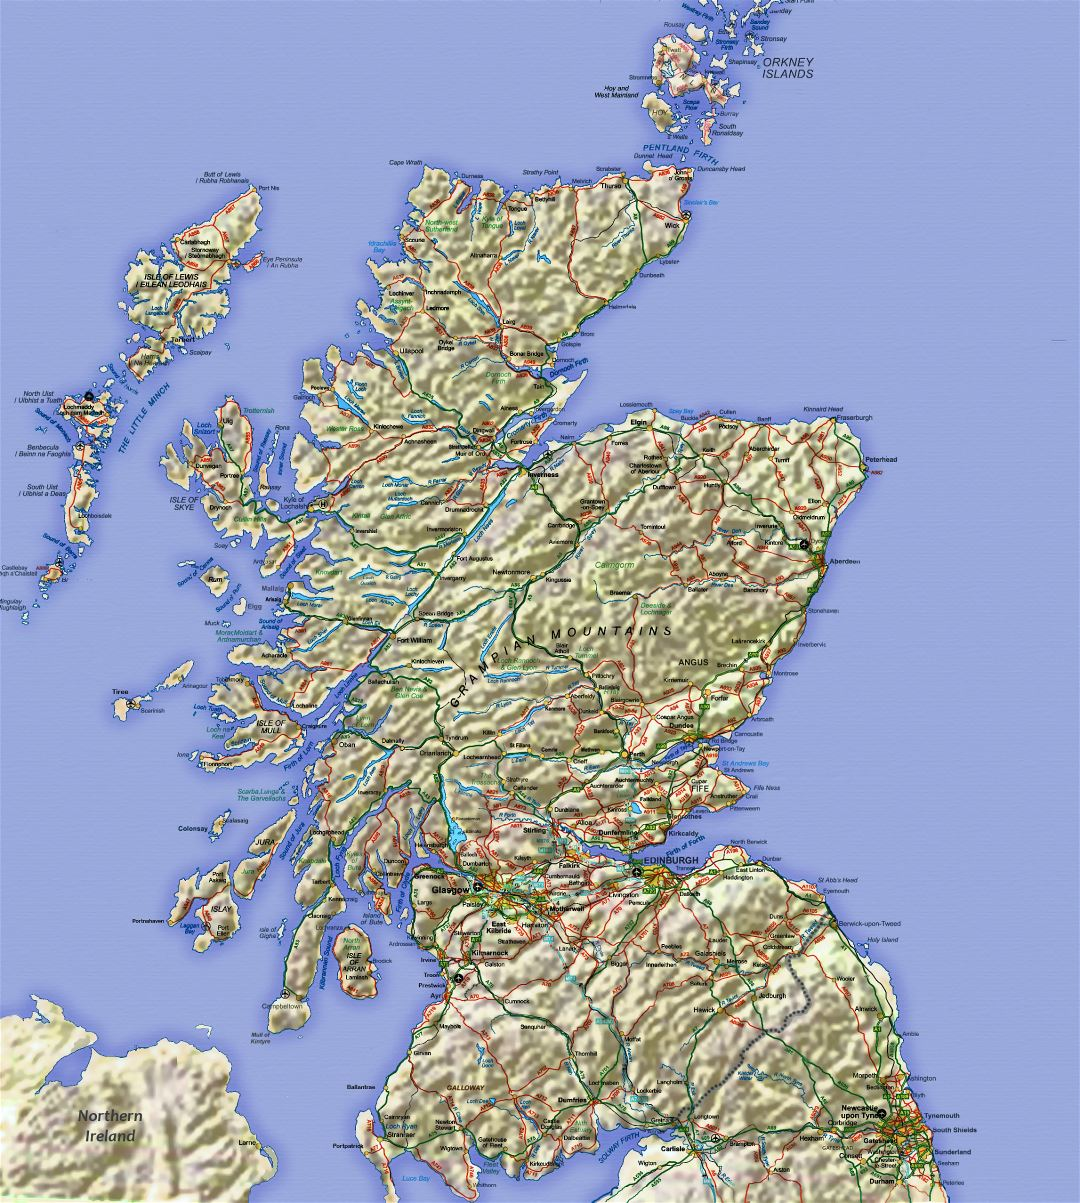 Large map of Scotland with relief, roads, major cities and airports